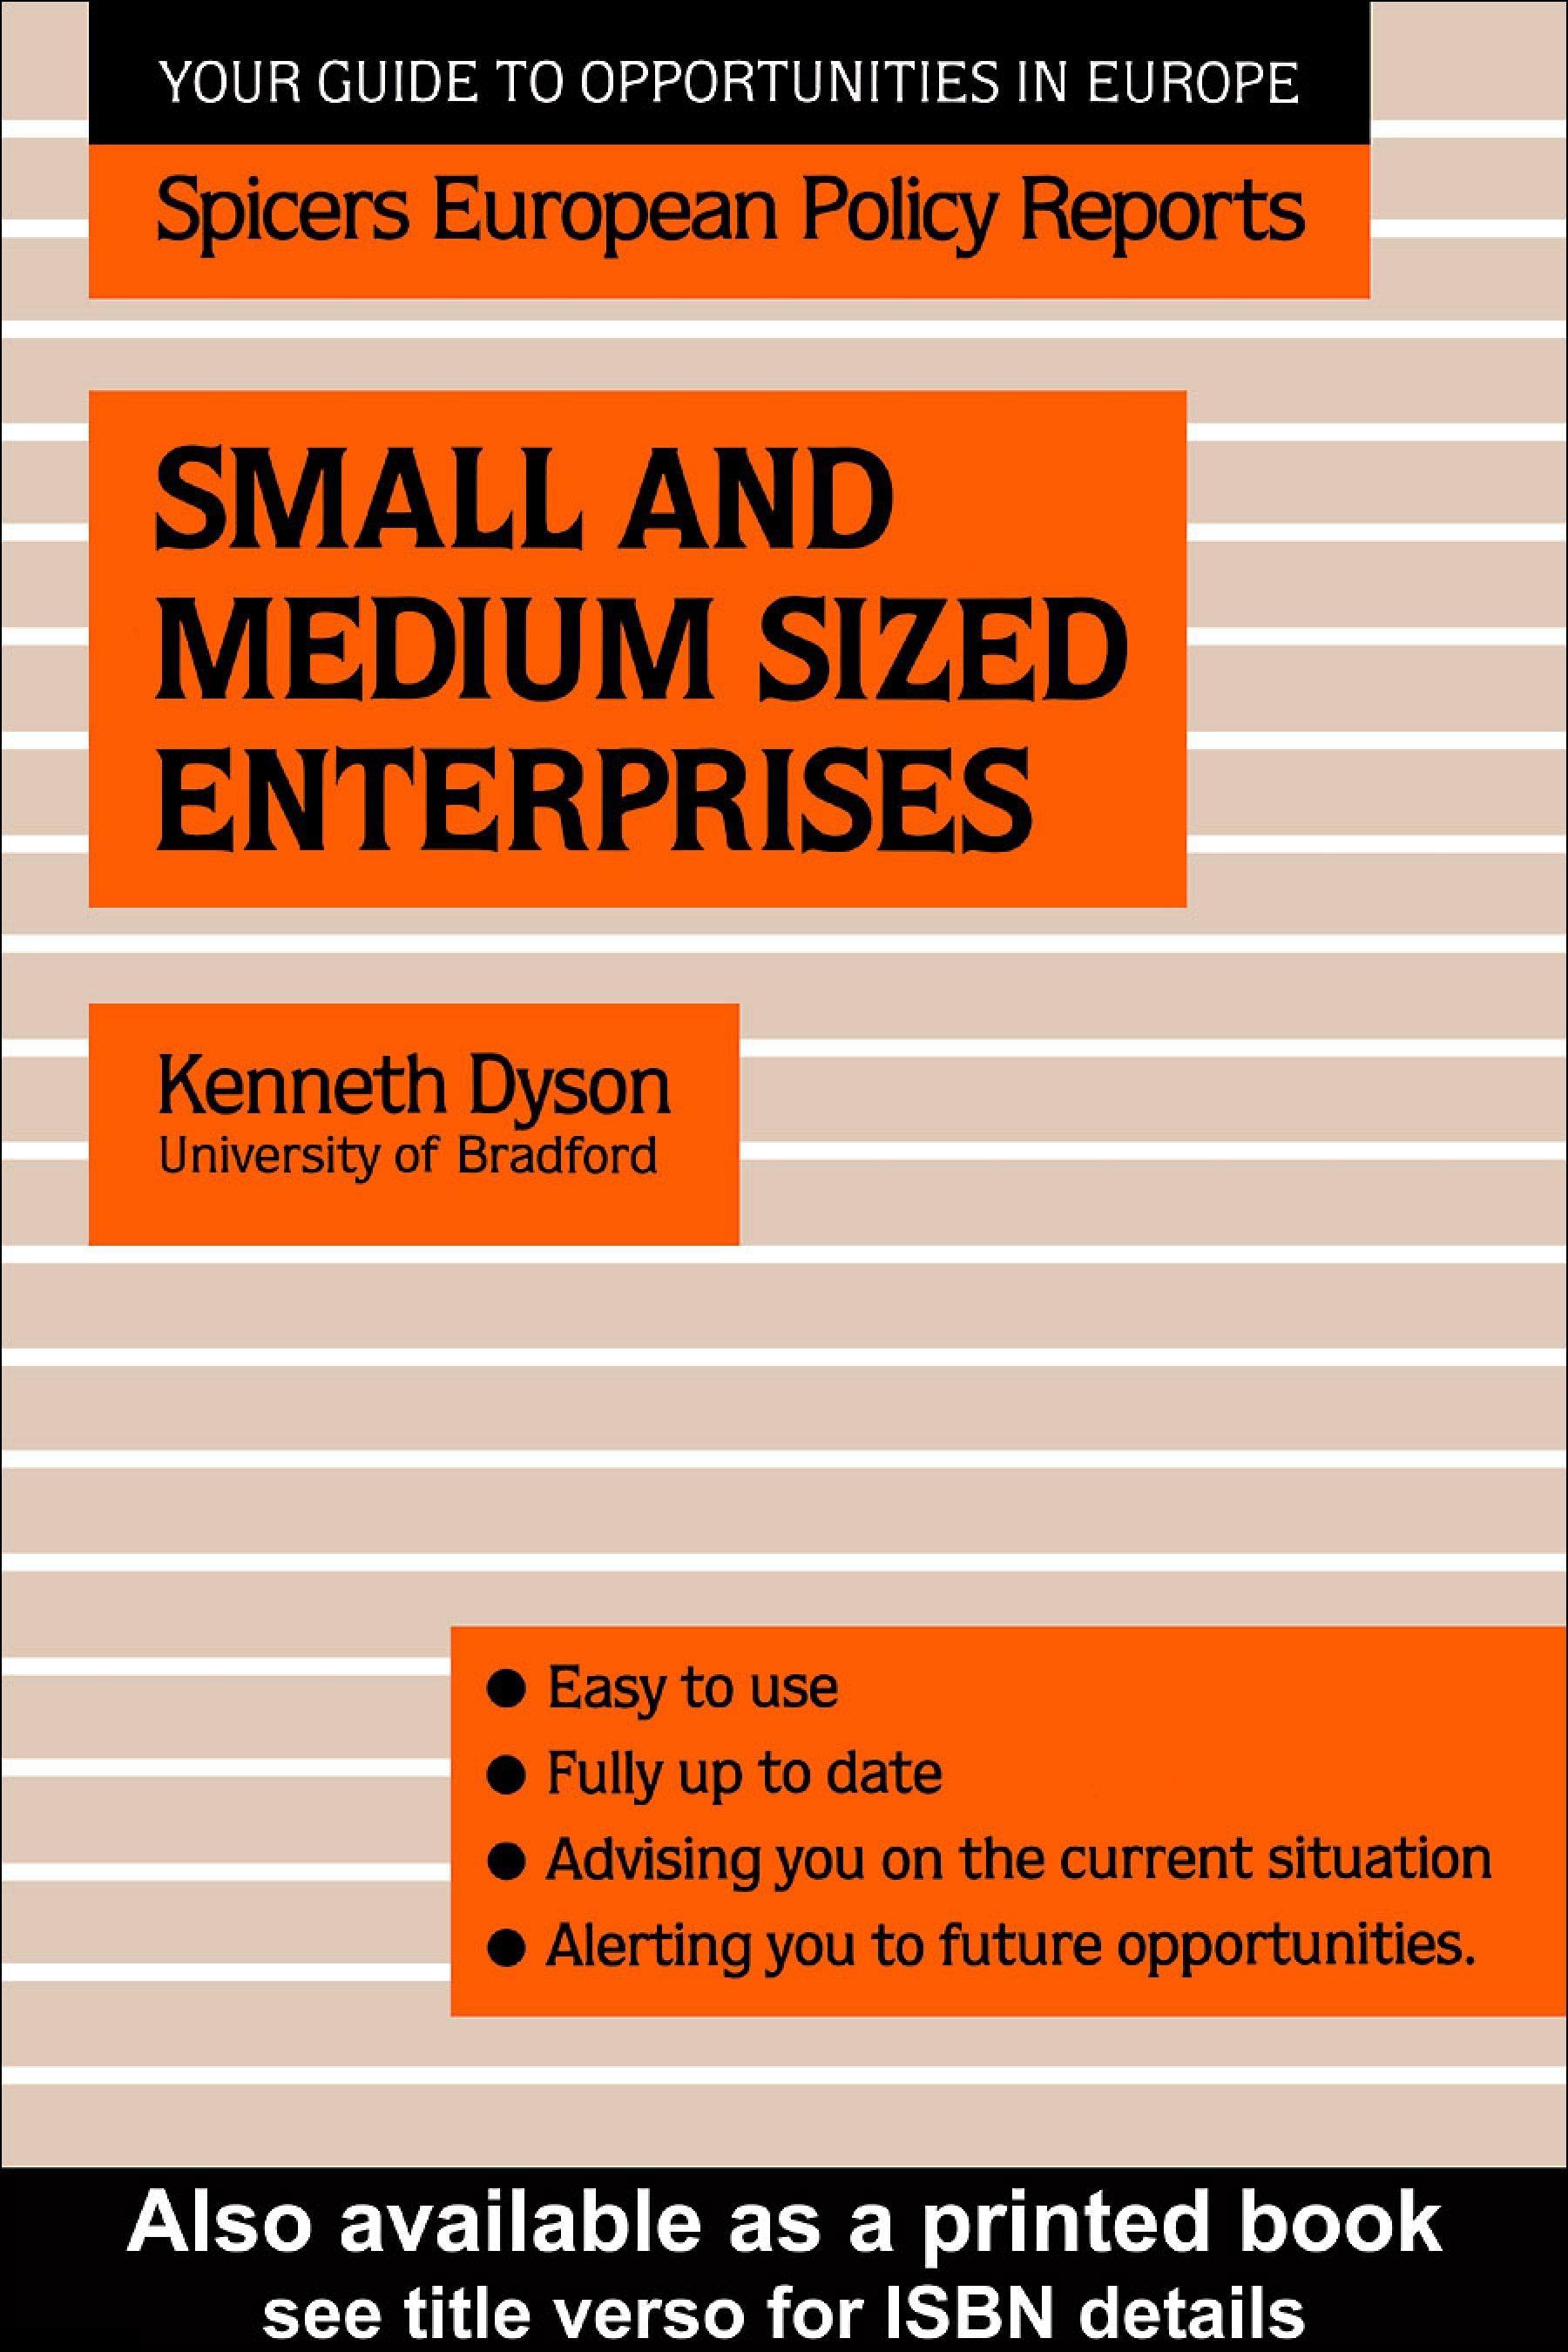 Small and Medium Sized Enterprises